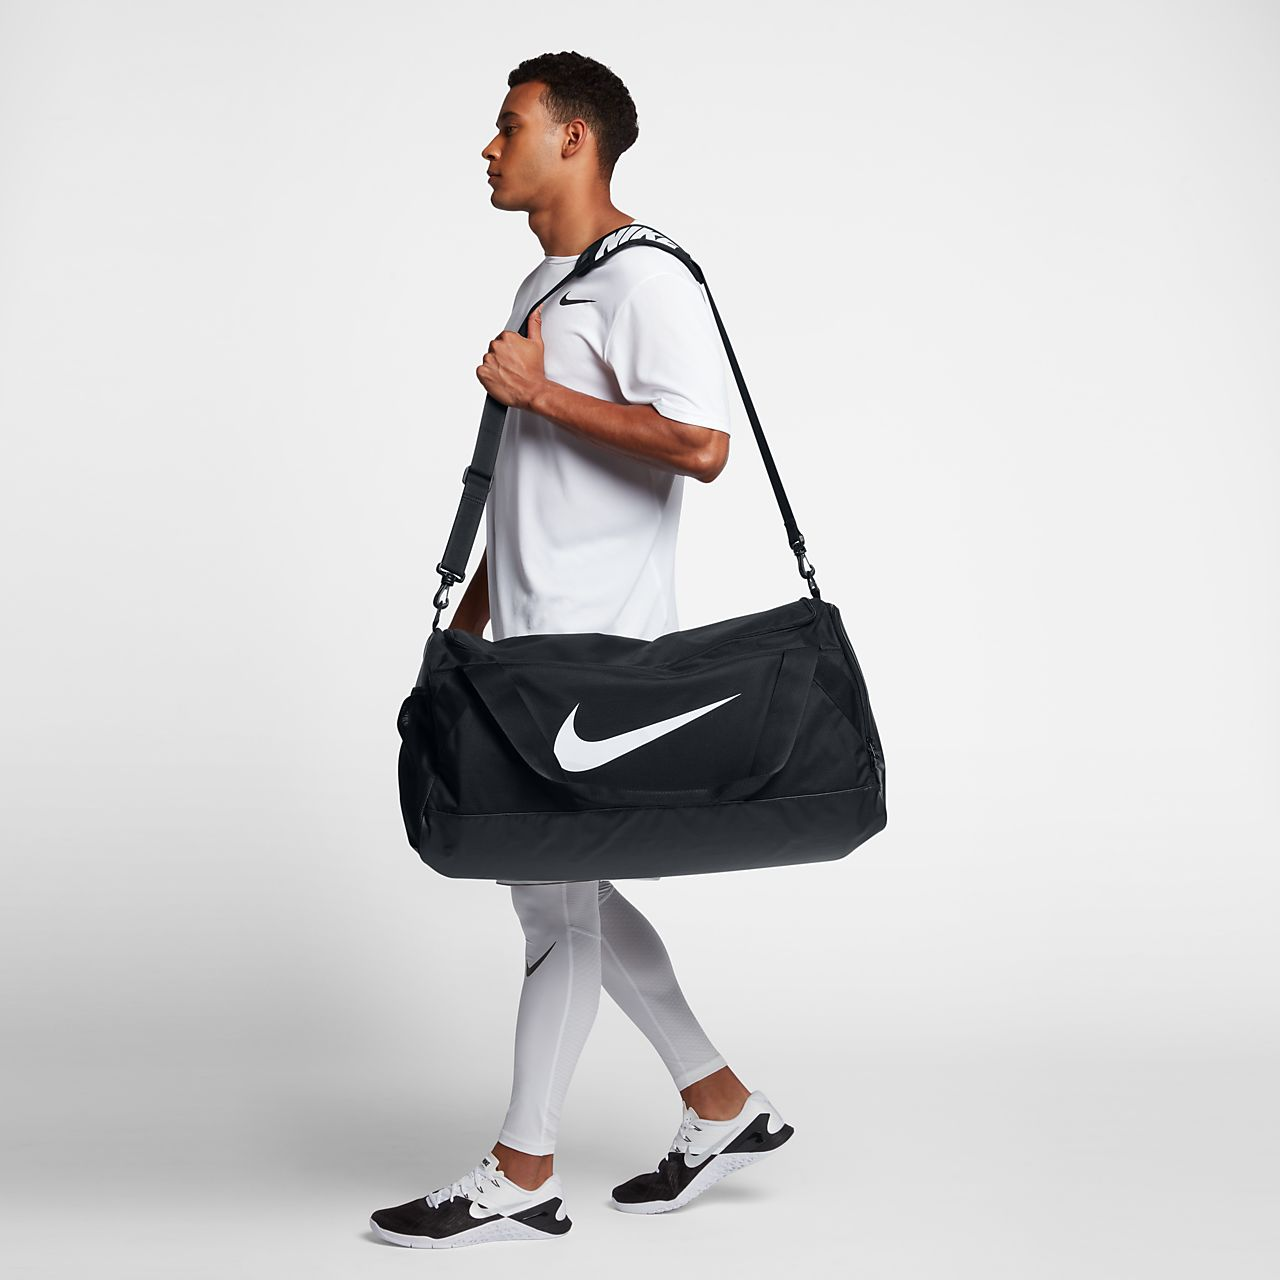 dc8a724b178c ... Nike Brasilia (Large) Training Duffel Bag